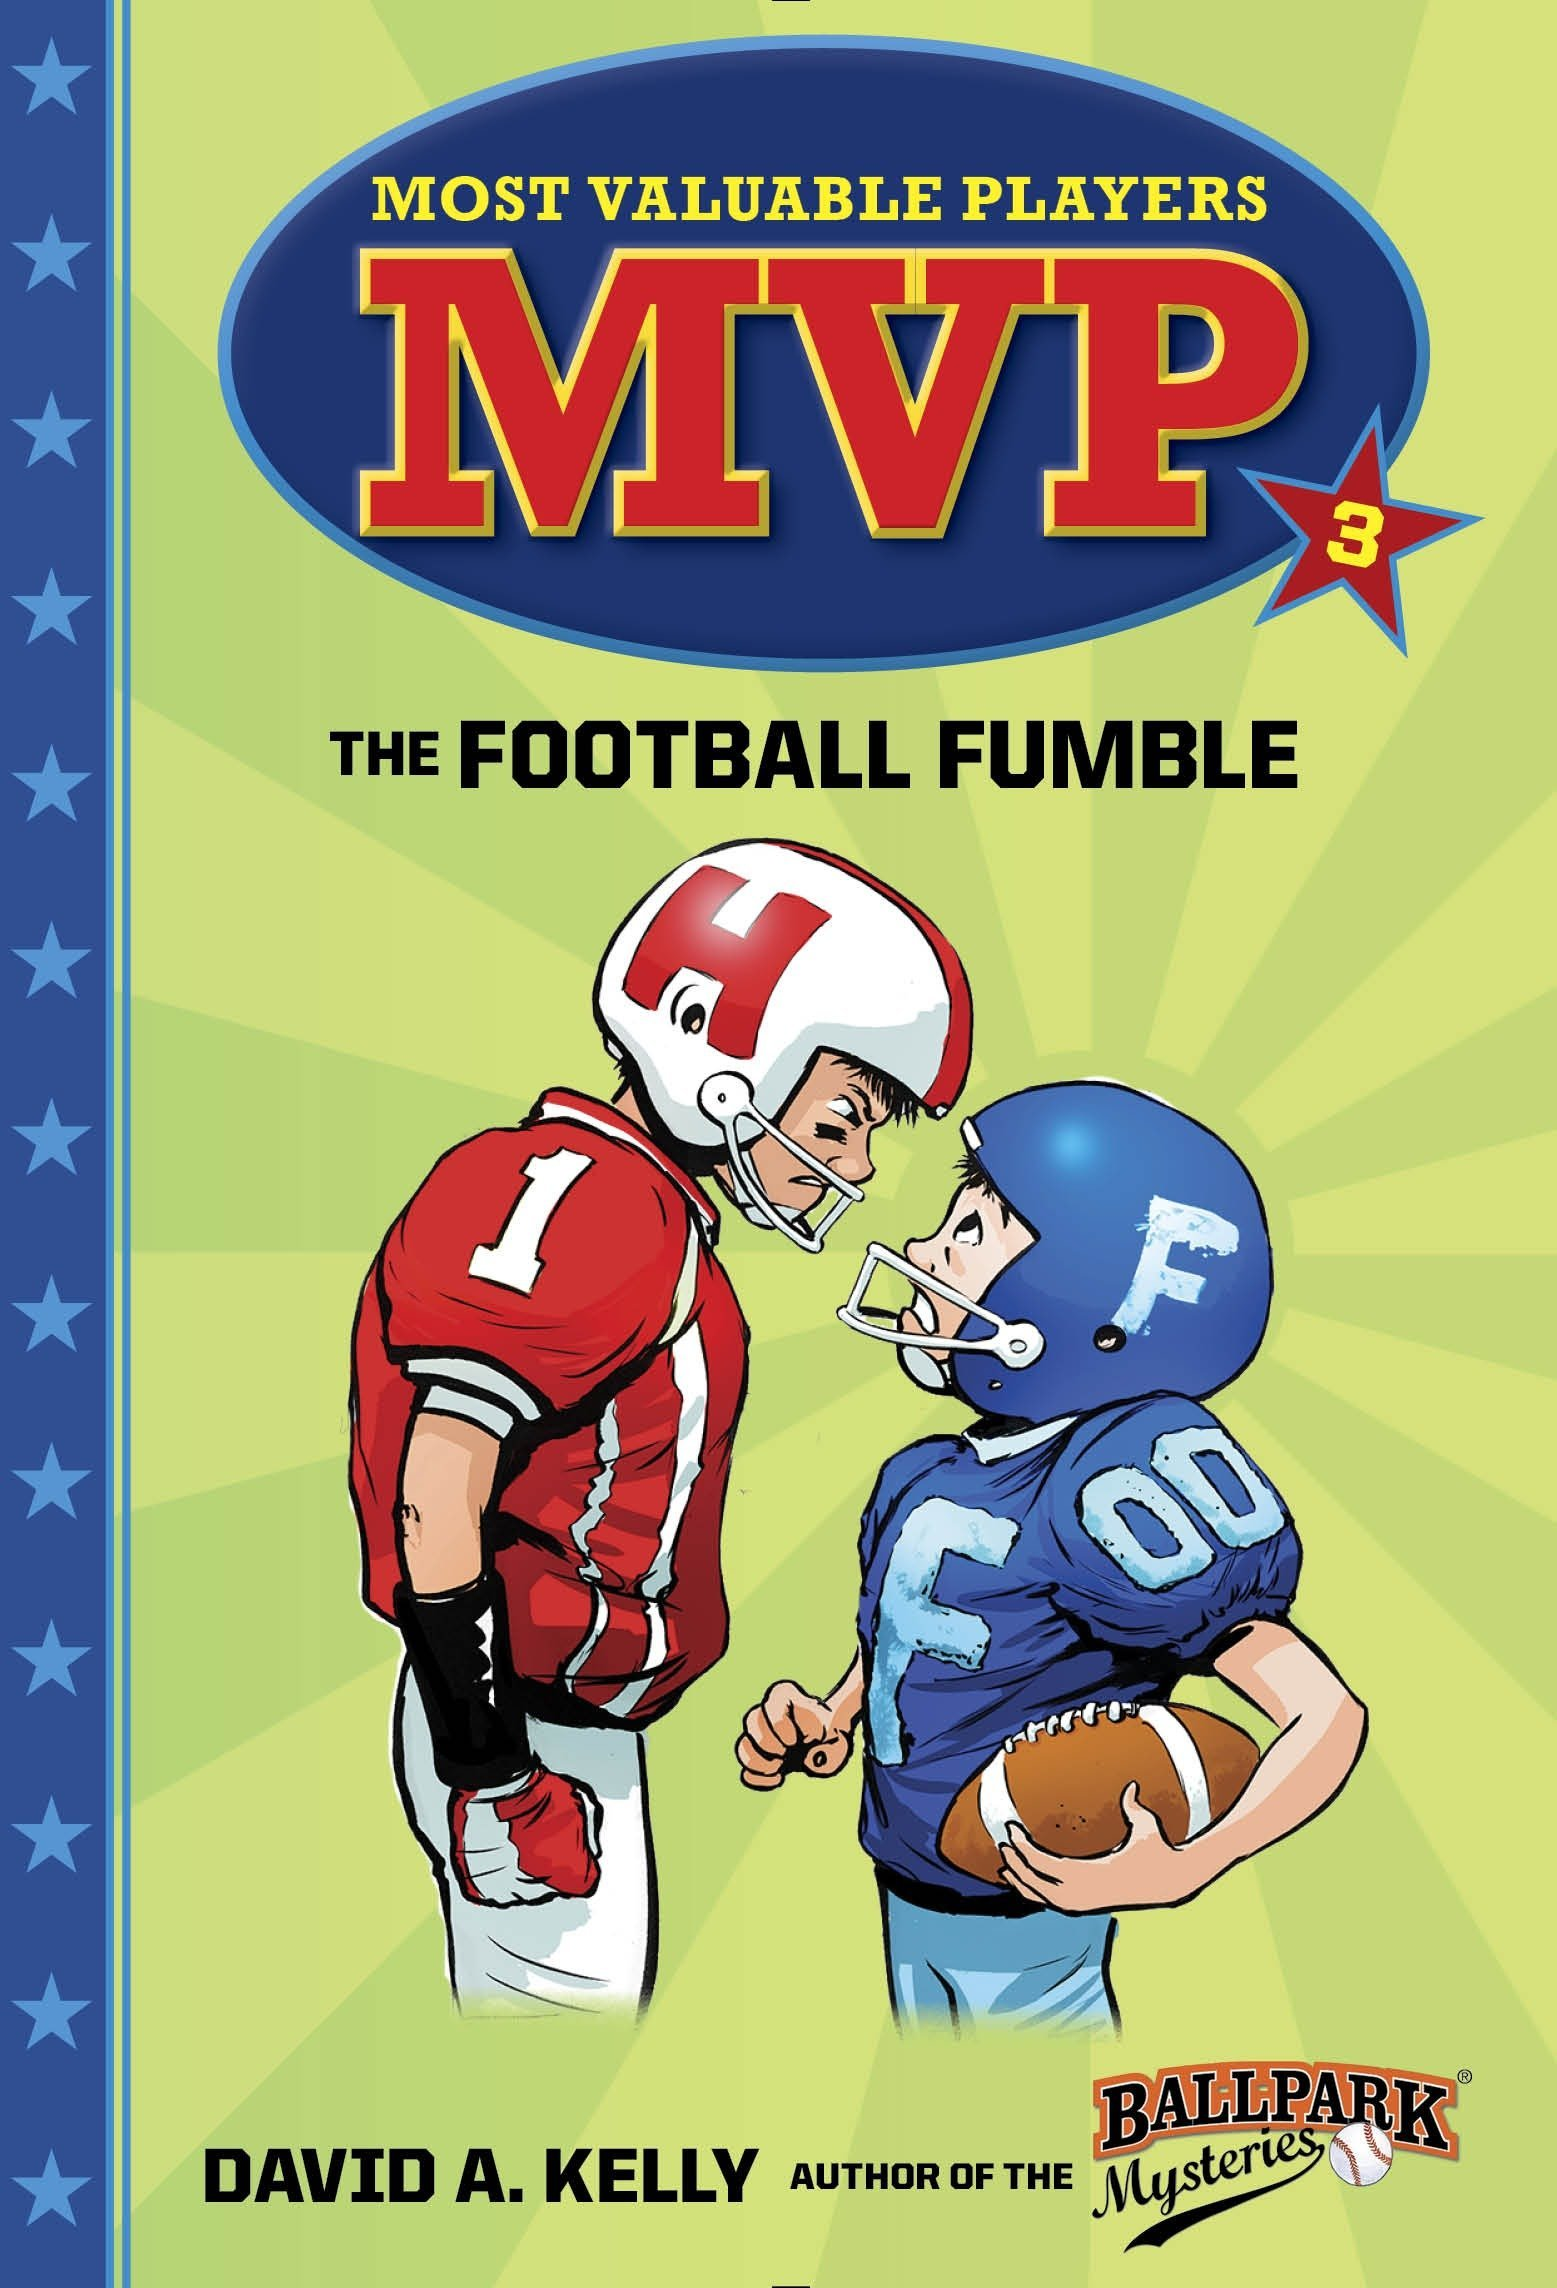 Read Online MVP #3: The Football Fumble (Most Valuable Players) pdf